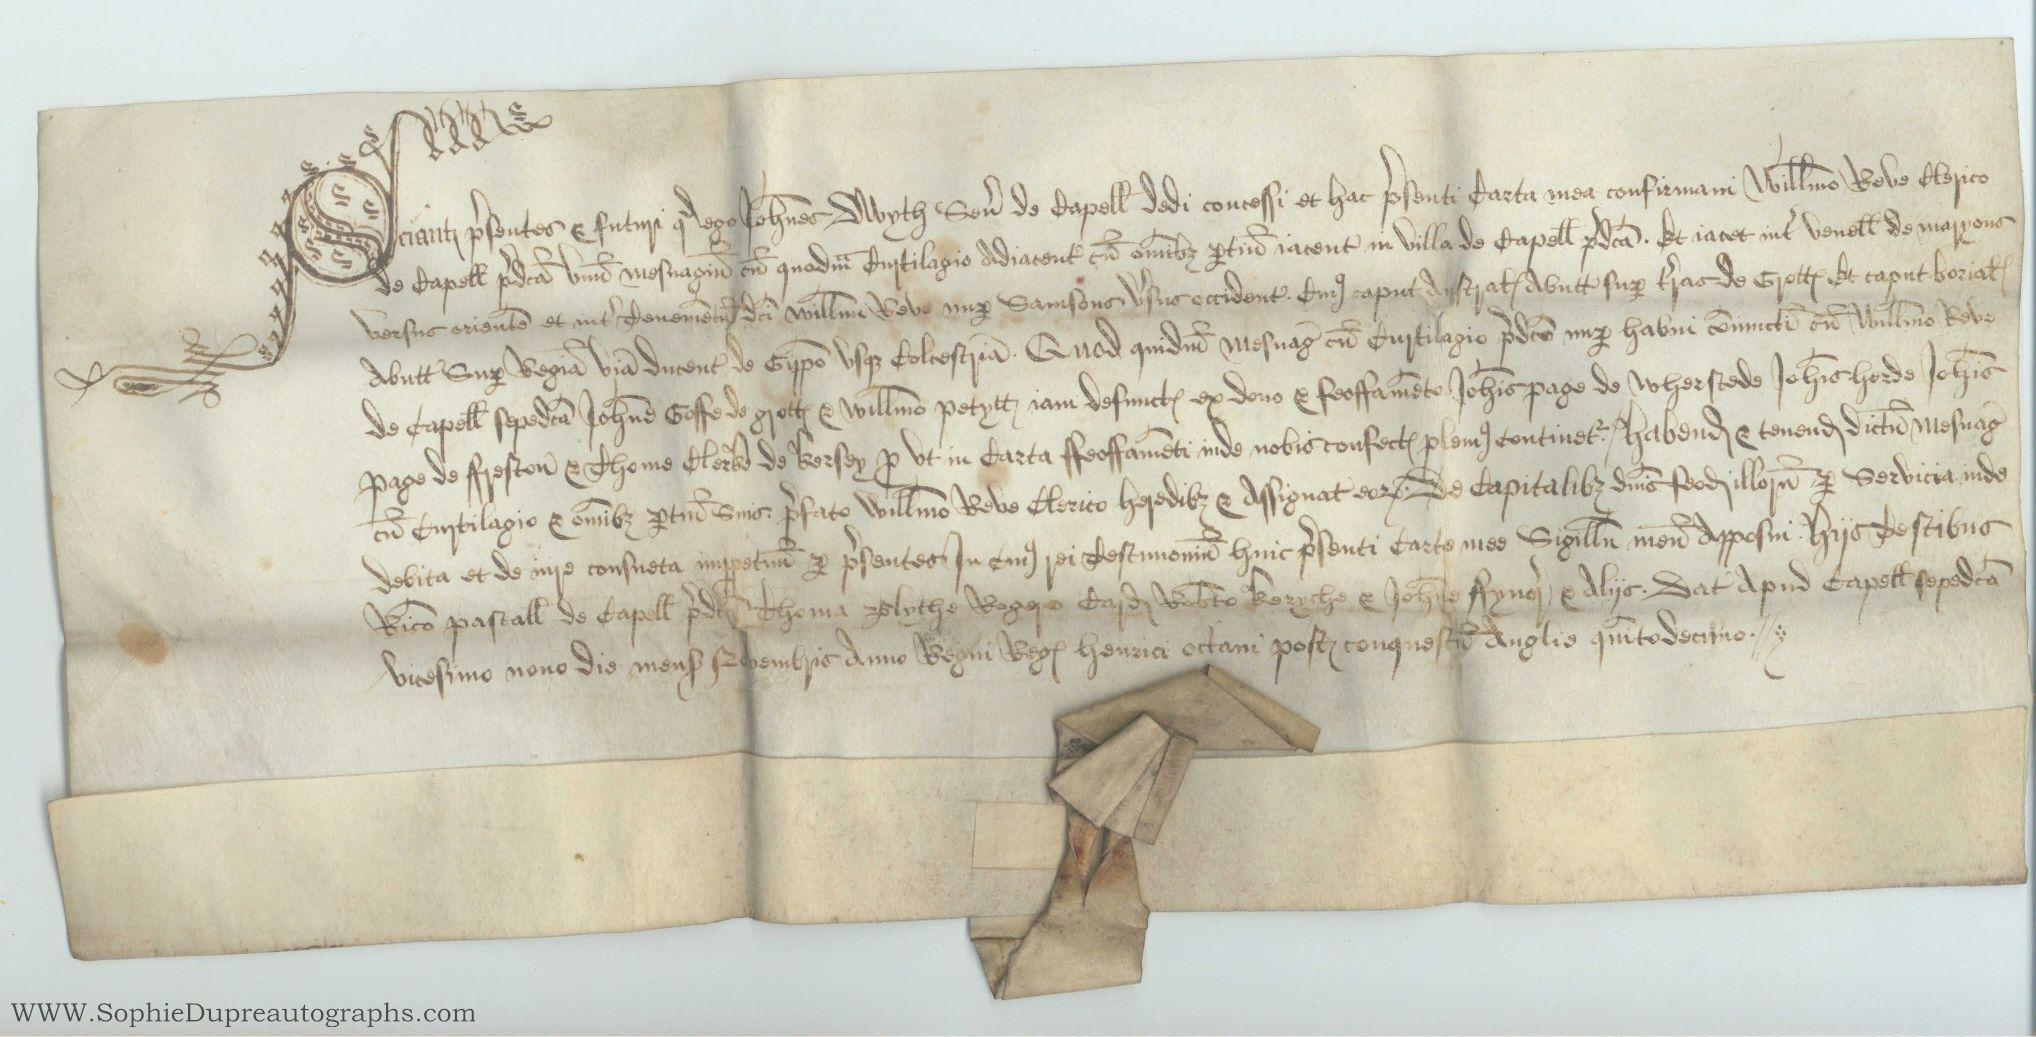 Confirmation of grant in perpetuity to William Reve, clerk, of Capel, (John, senior, of Capel St. Mary, Suffolk) DWYTH in Latin with translation, of  a dwelling in Capel, bounded by Maryons Lane on the east . the tenement of the said William Reve formerly Samsons on th